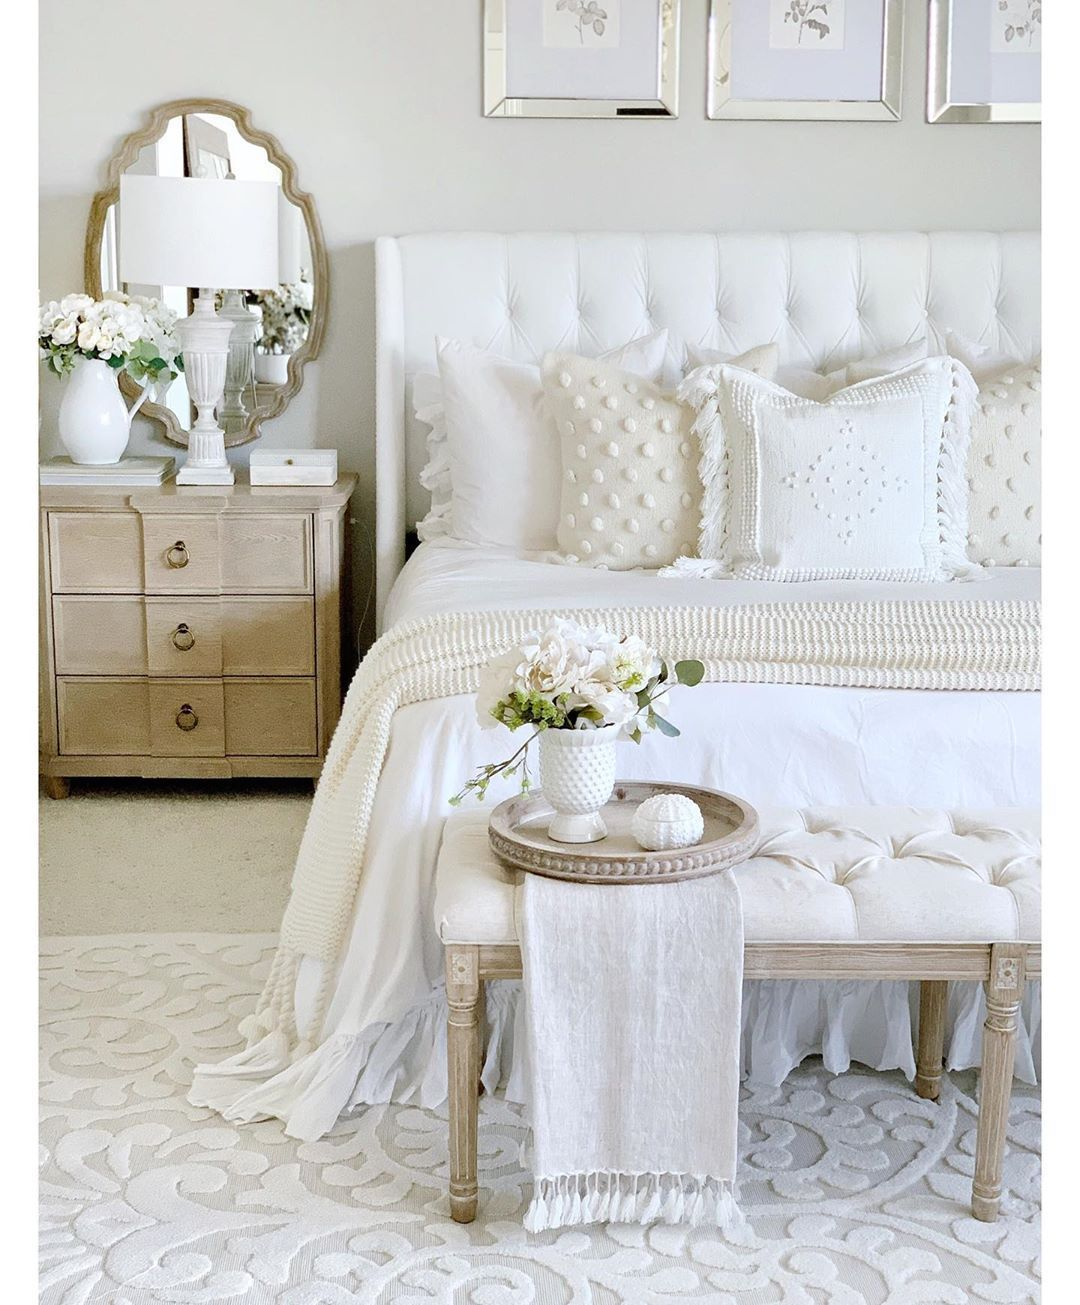 Simple Home Decor Simple Home Decor Bedroom Interior Master Bedrooms Decor Home Decor Home tour master bedroom after